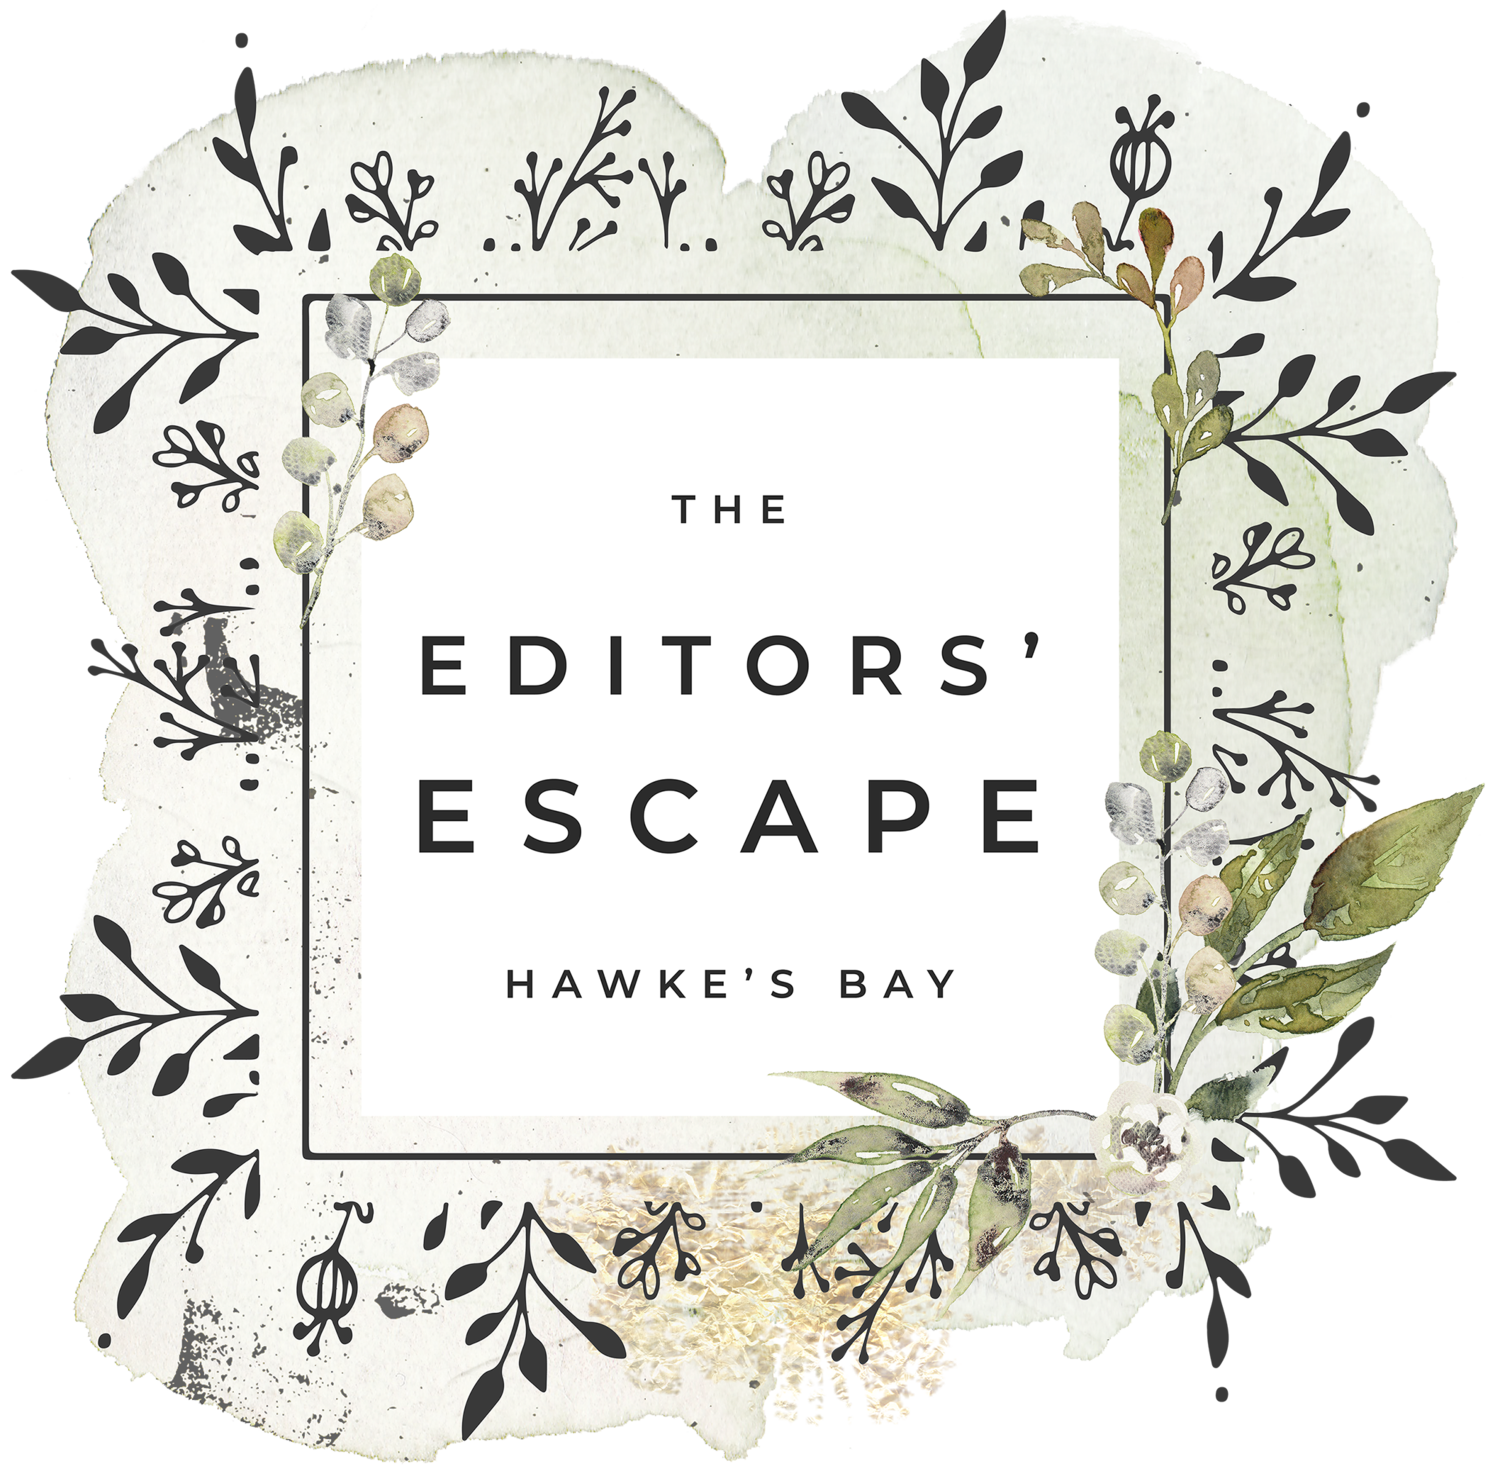 The Editors' Escape